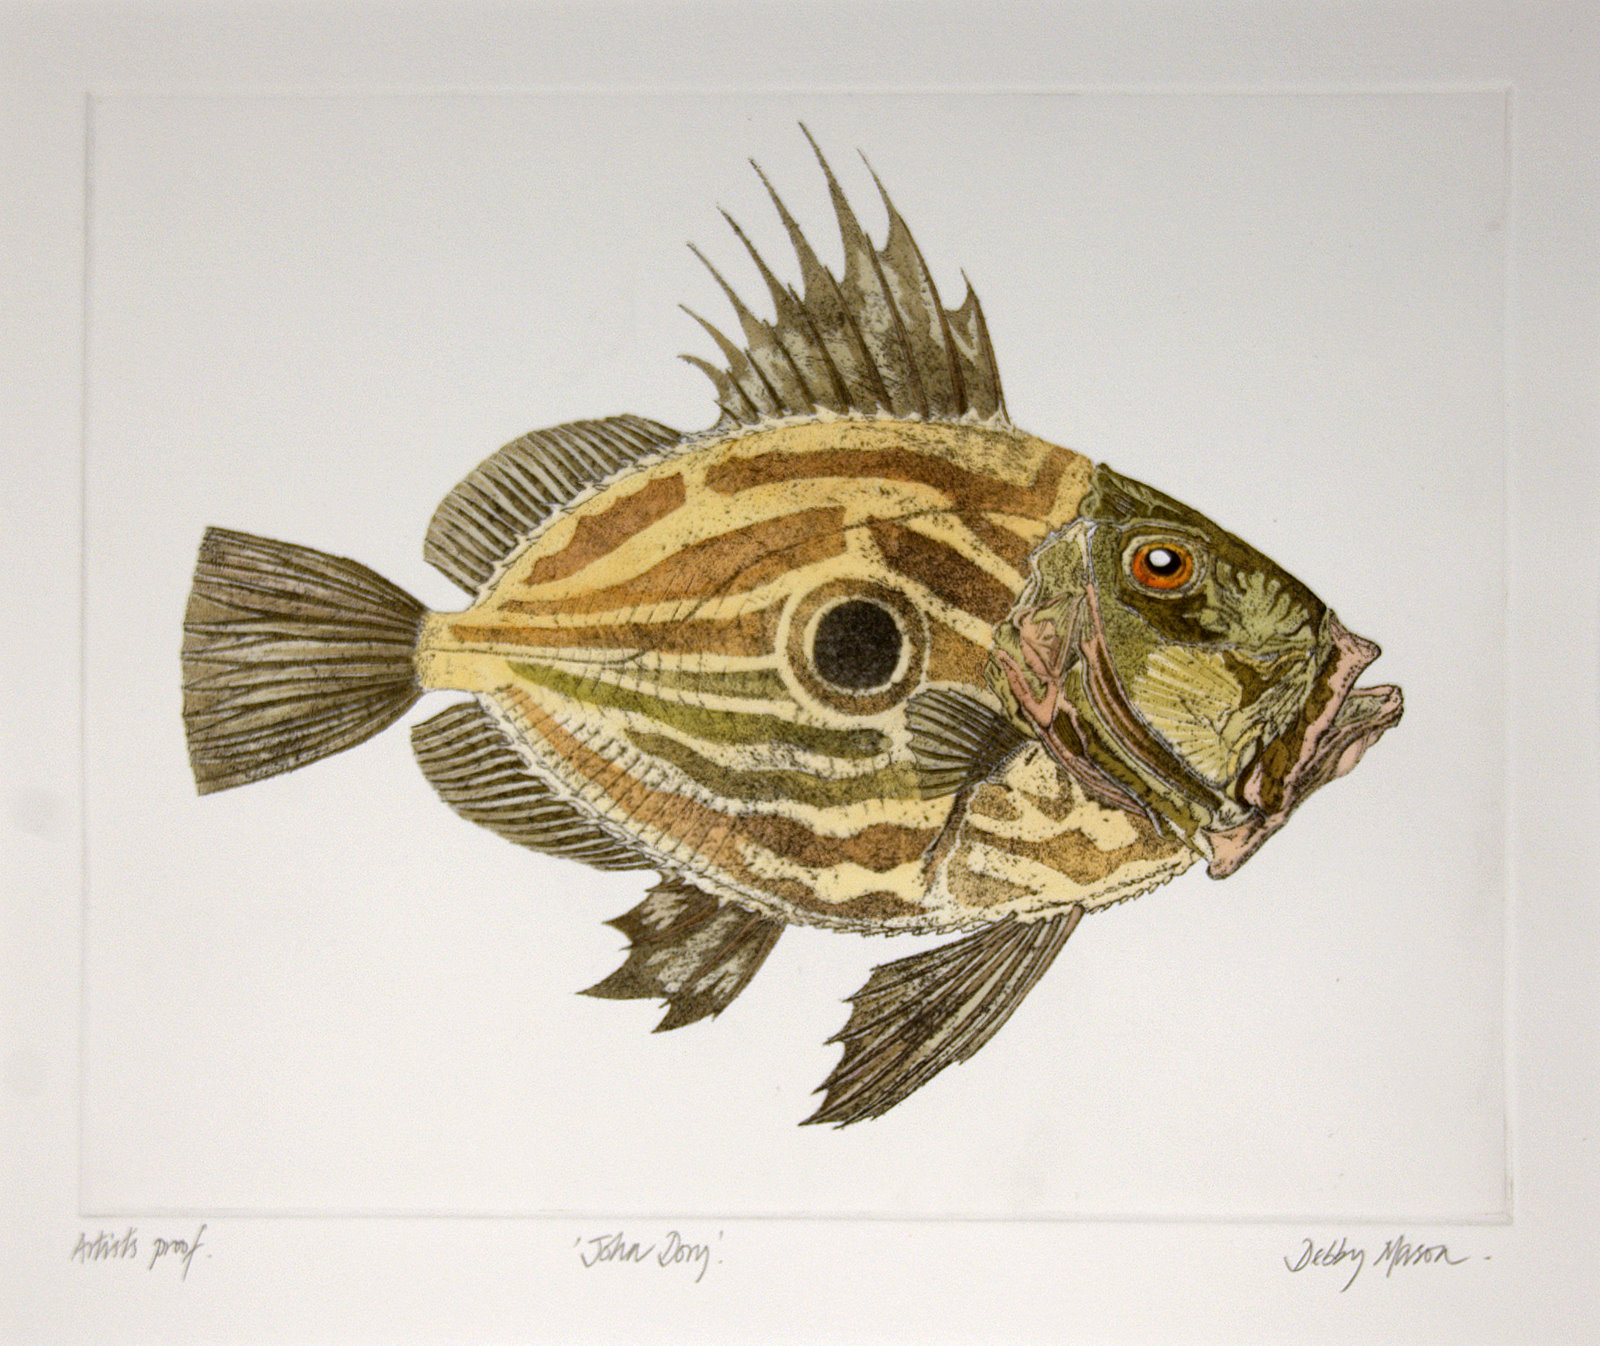 John dory salt water fish uk large prints hand for Picture of dory fish